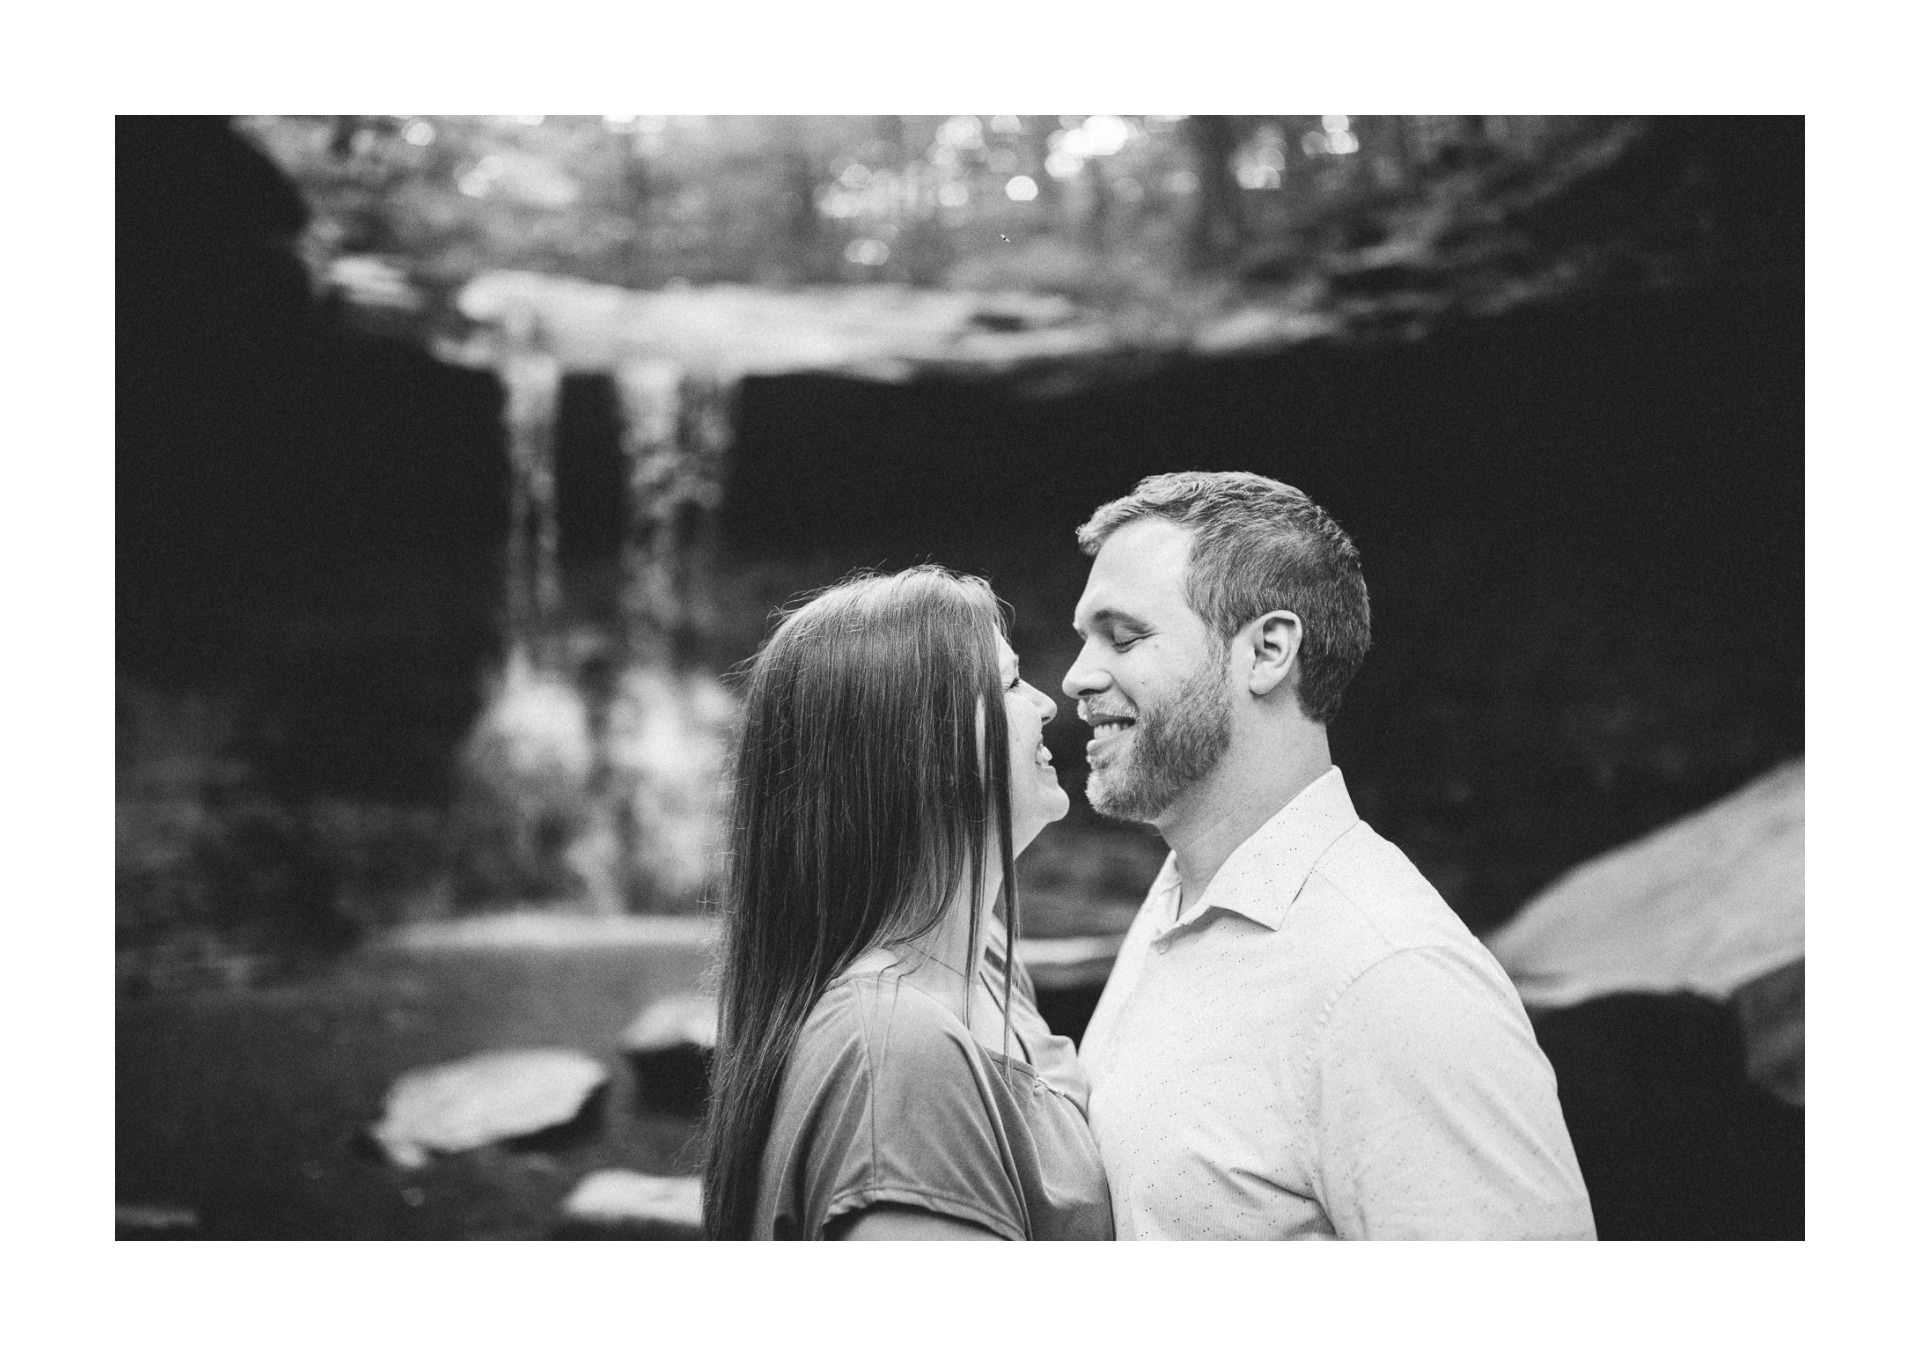 Cuyahoga Valley National Park Engagement Photos 4.jpg